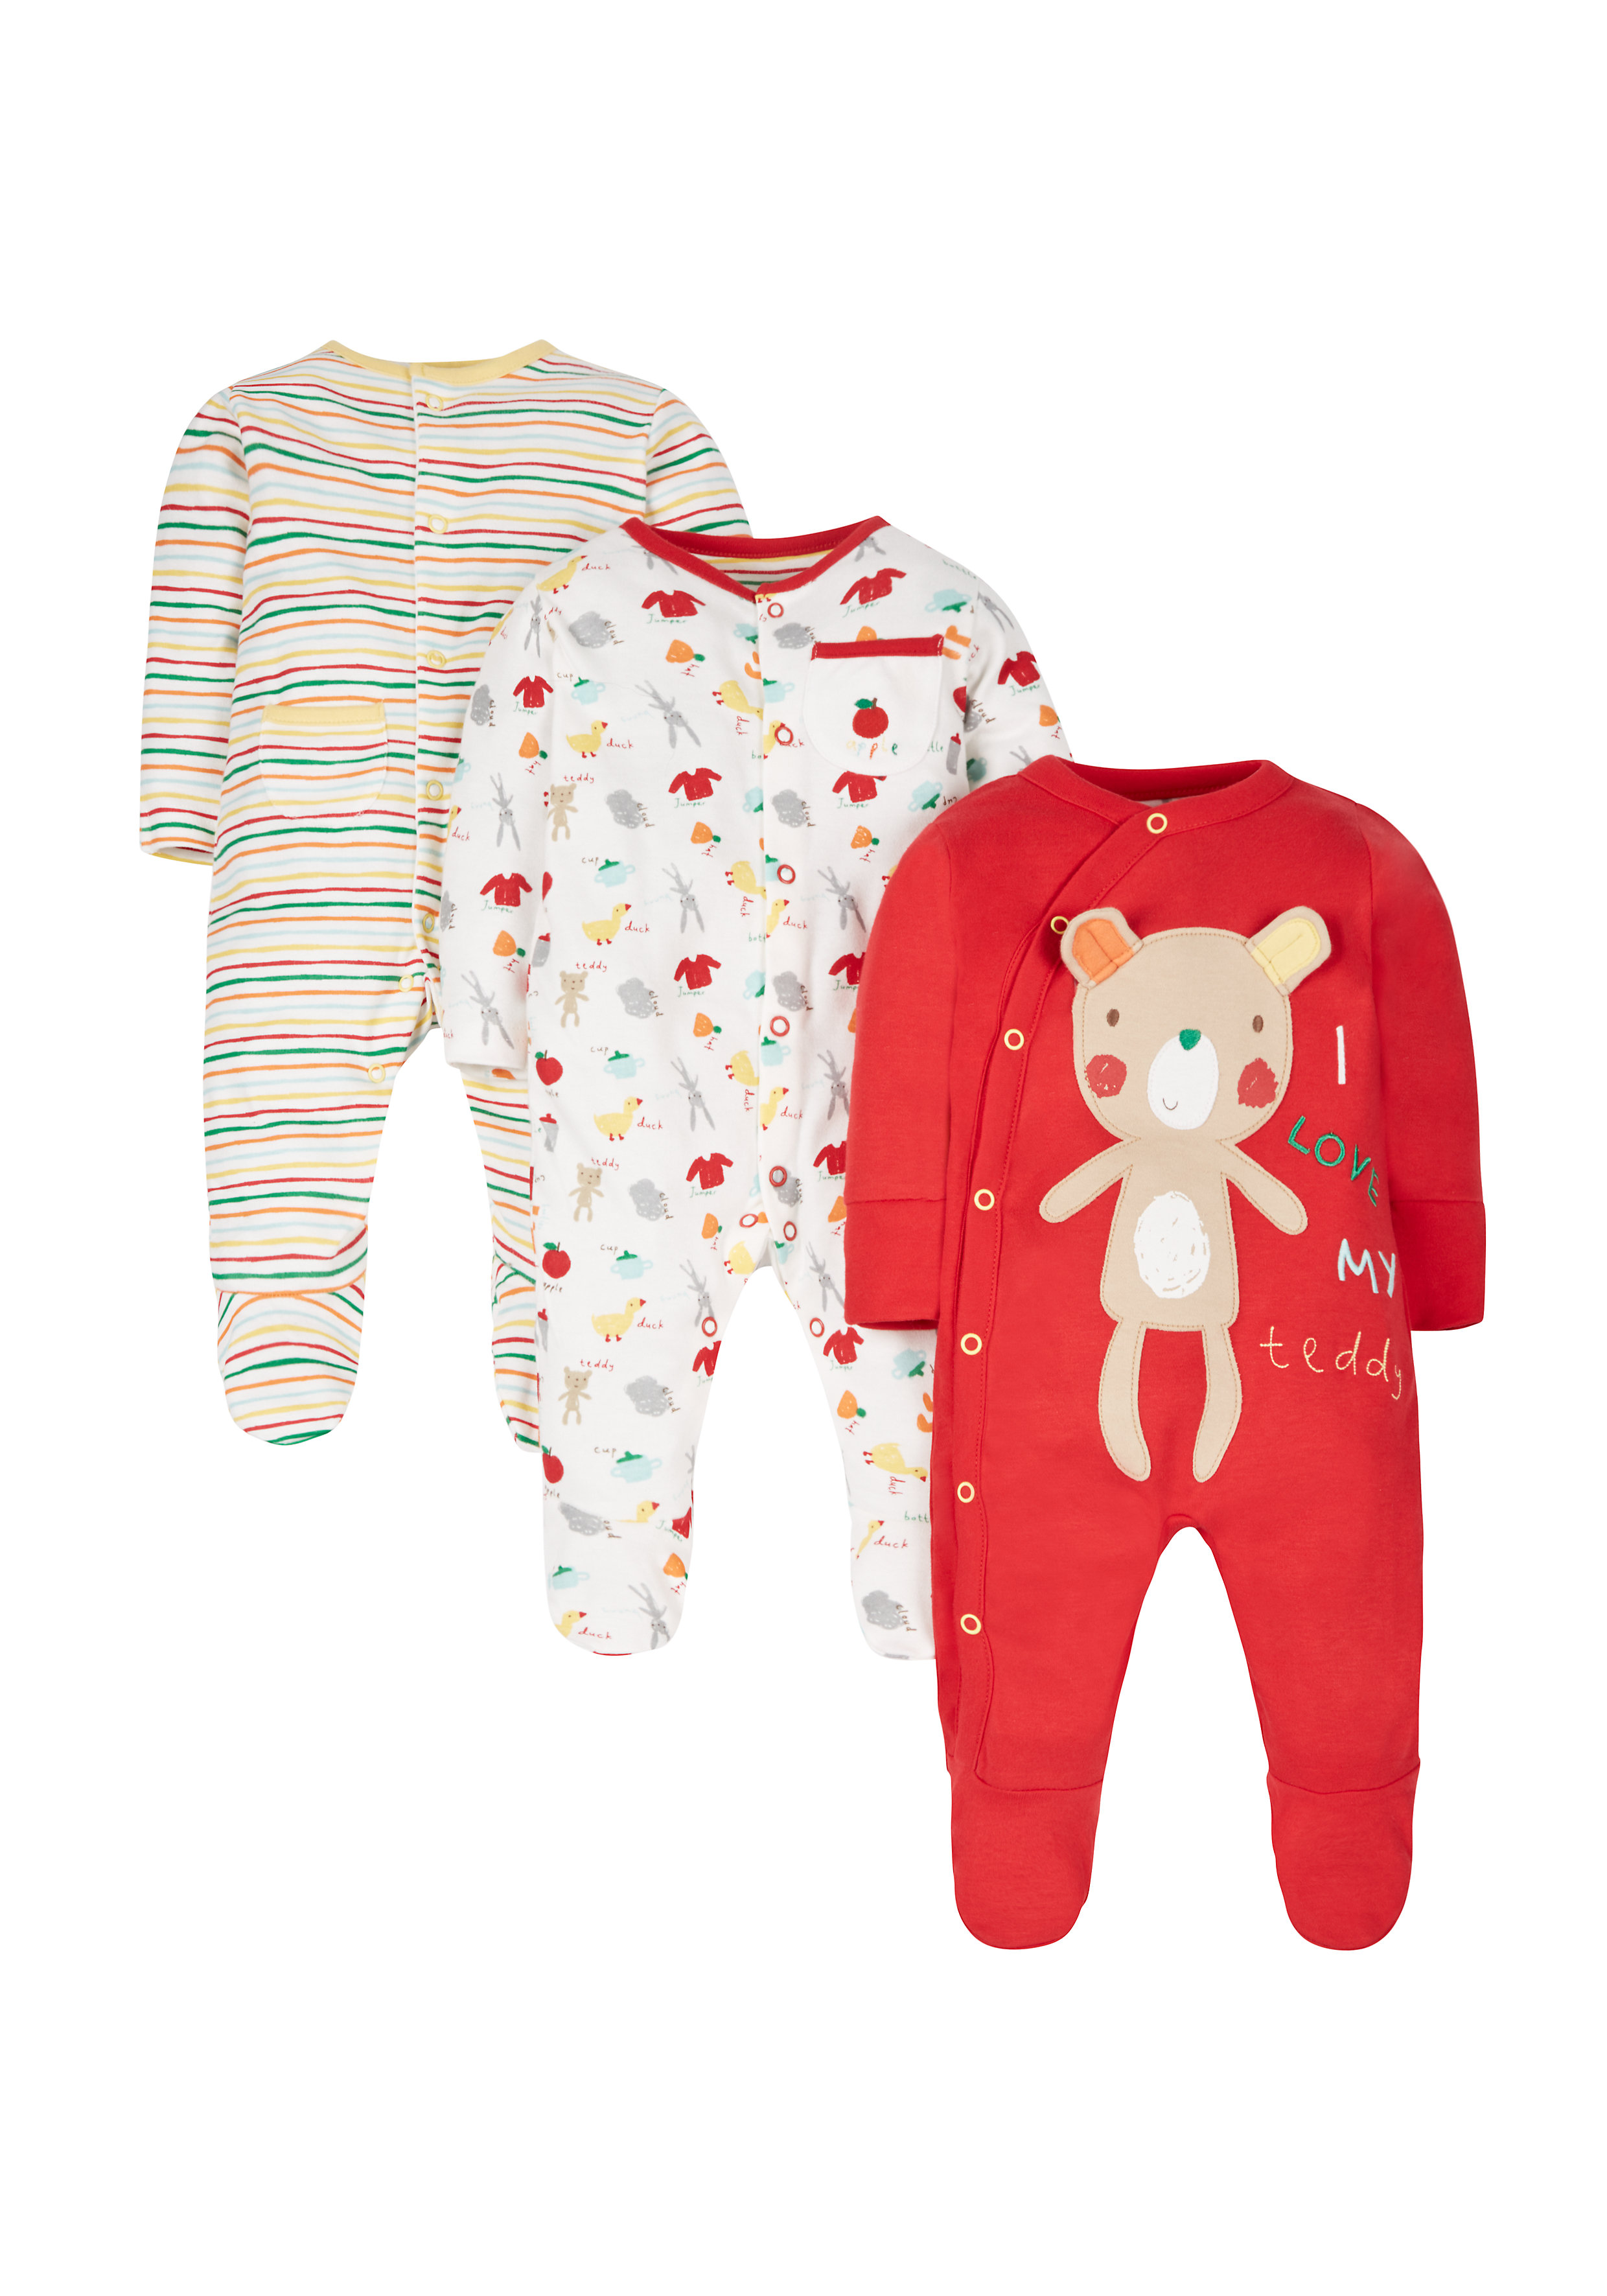 Mothercare   Unisex Full Sleeves Sleepsuits - Pack of 3 - Multicolor